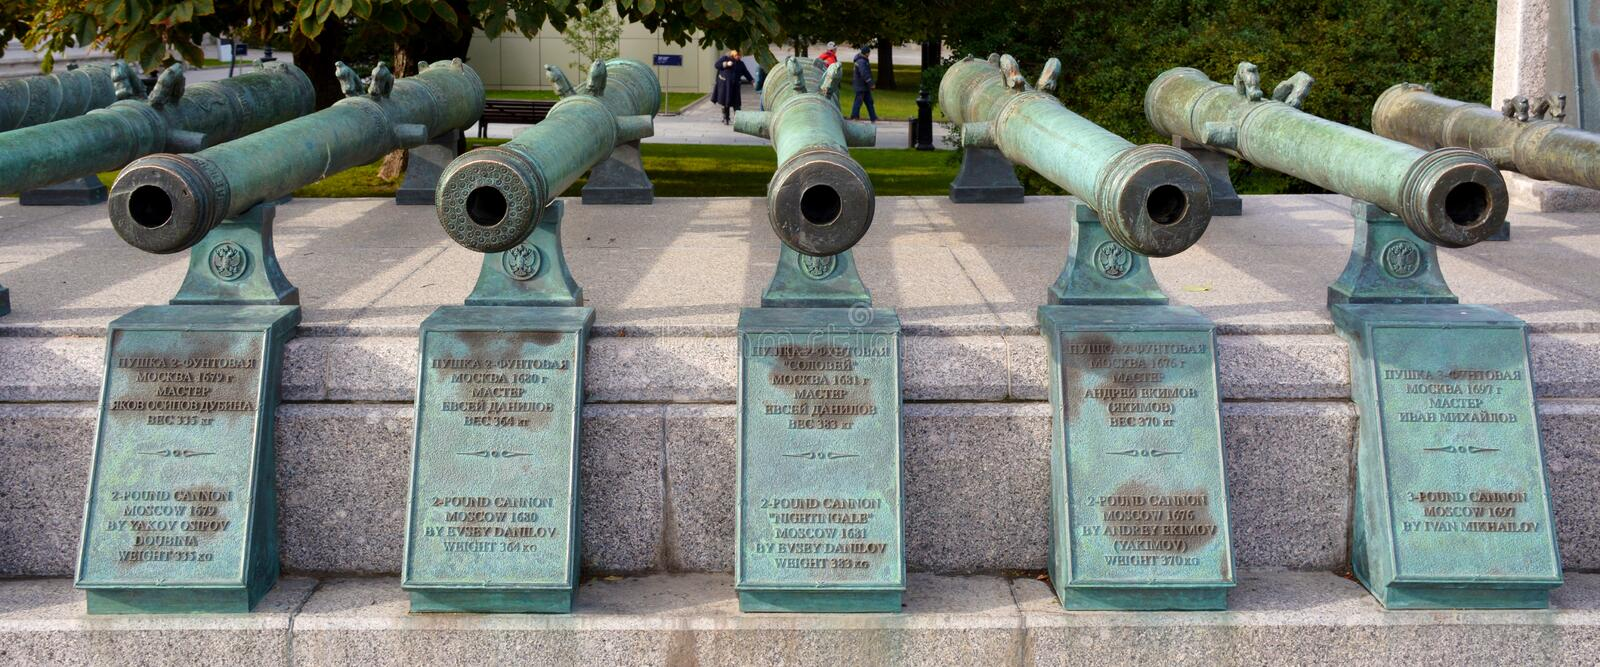 Cannons in Moscow Kremlin. Old Cannons in Moscow Kremlin royalty free stock image